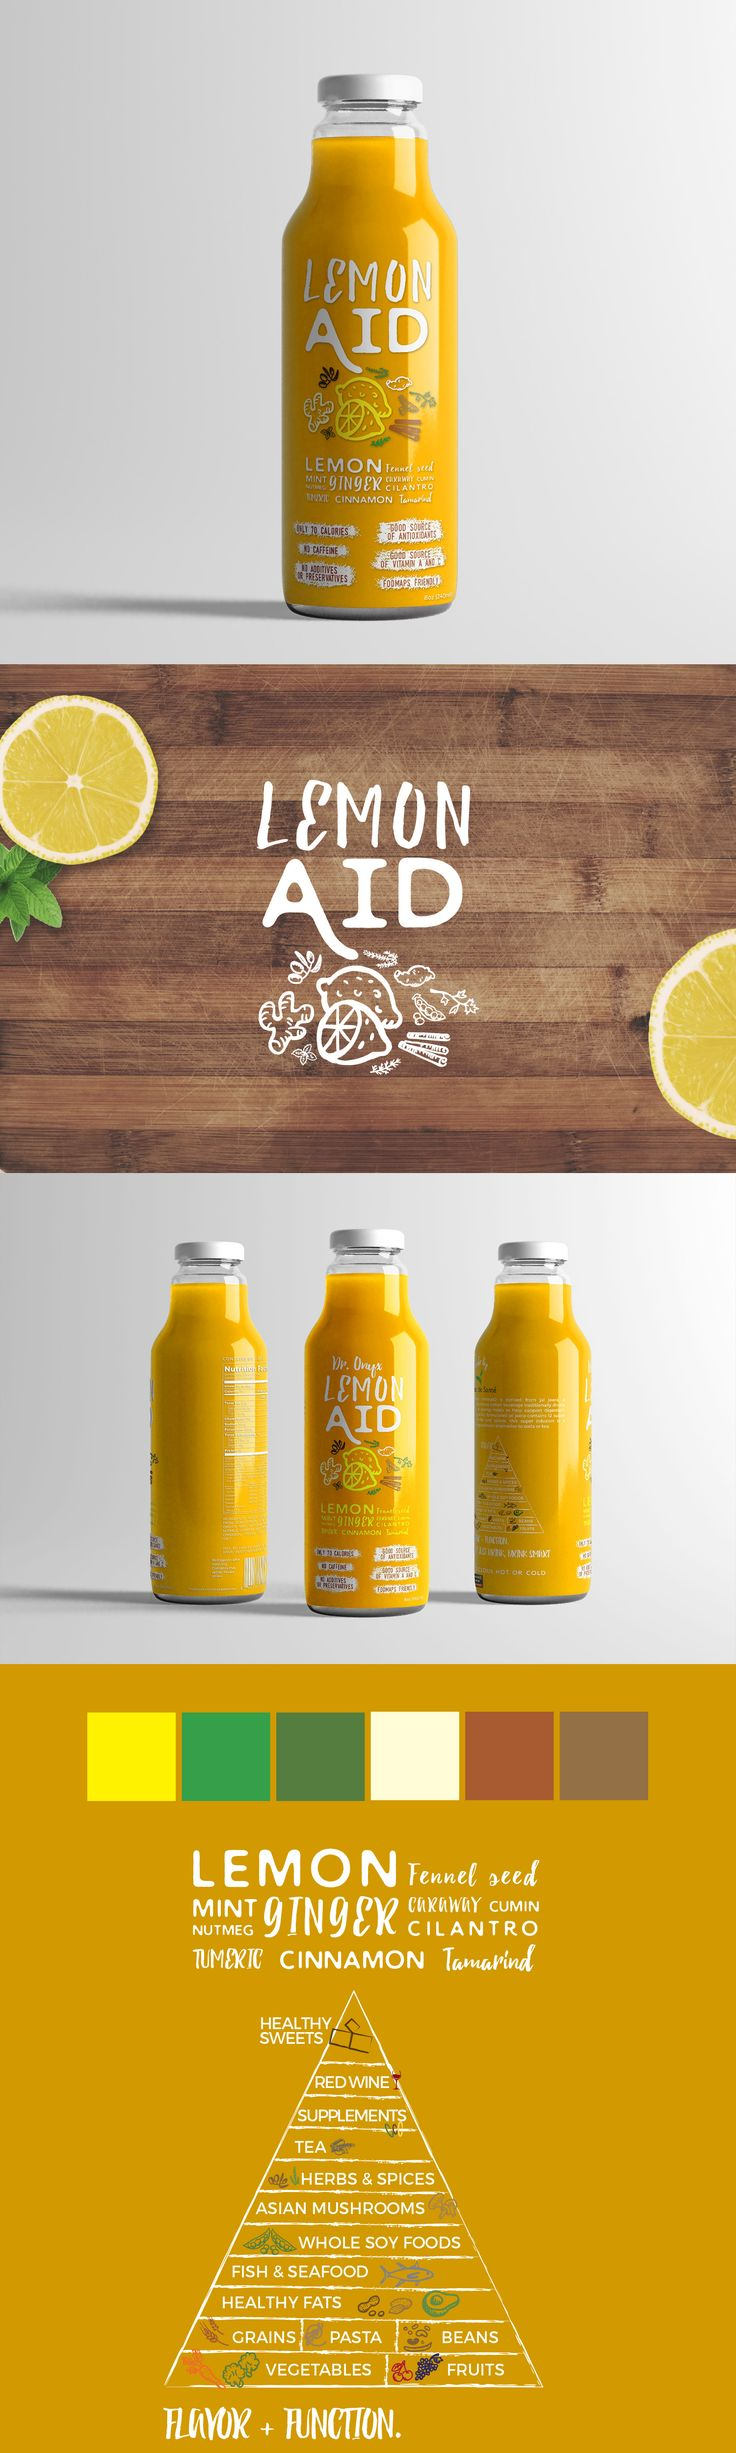 Glass juice cups design - Lemonaid Is A Healthy Drink That Needed An Upscale Modern Look Incorporating A Clear Label On